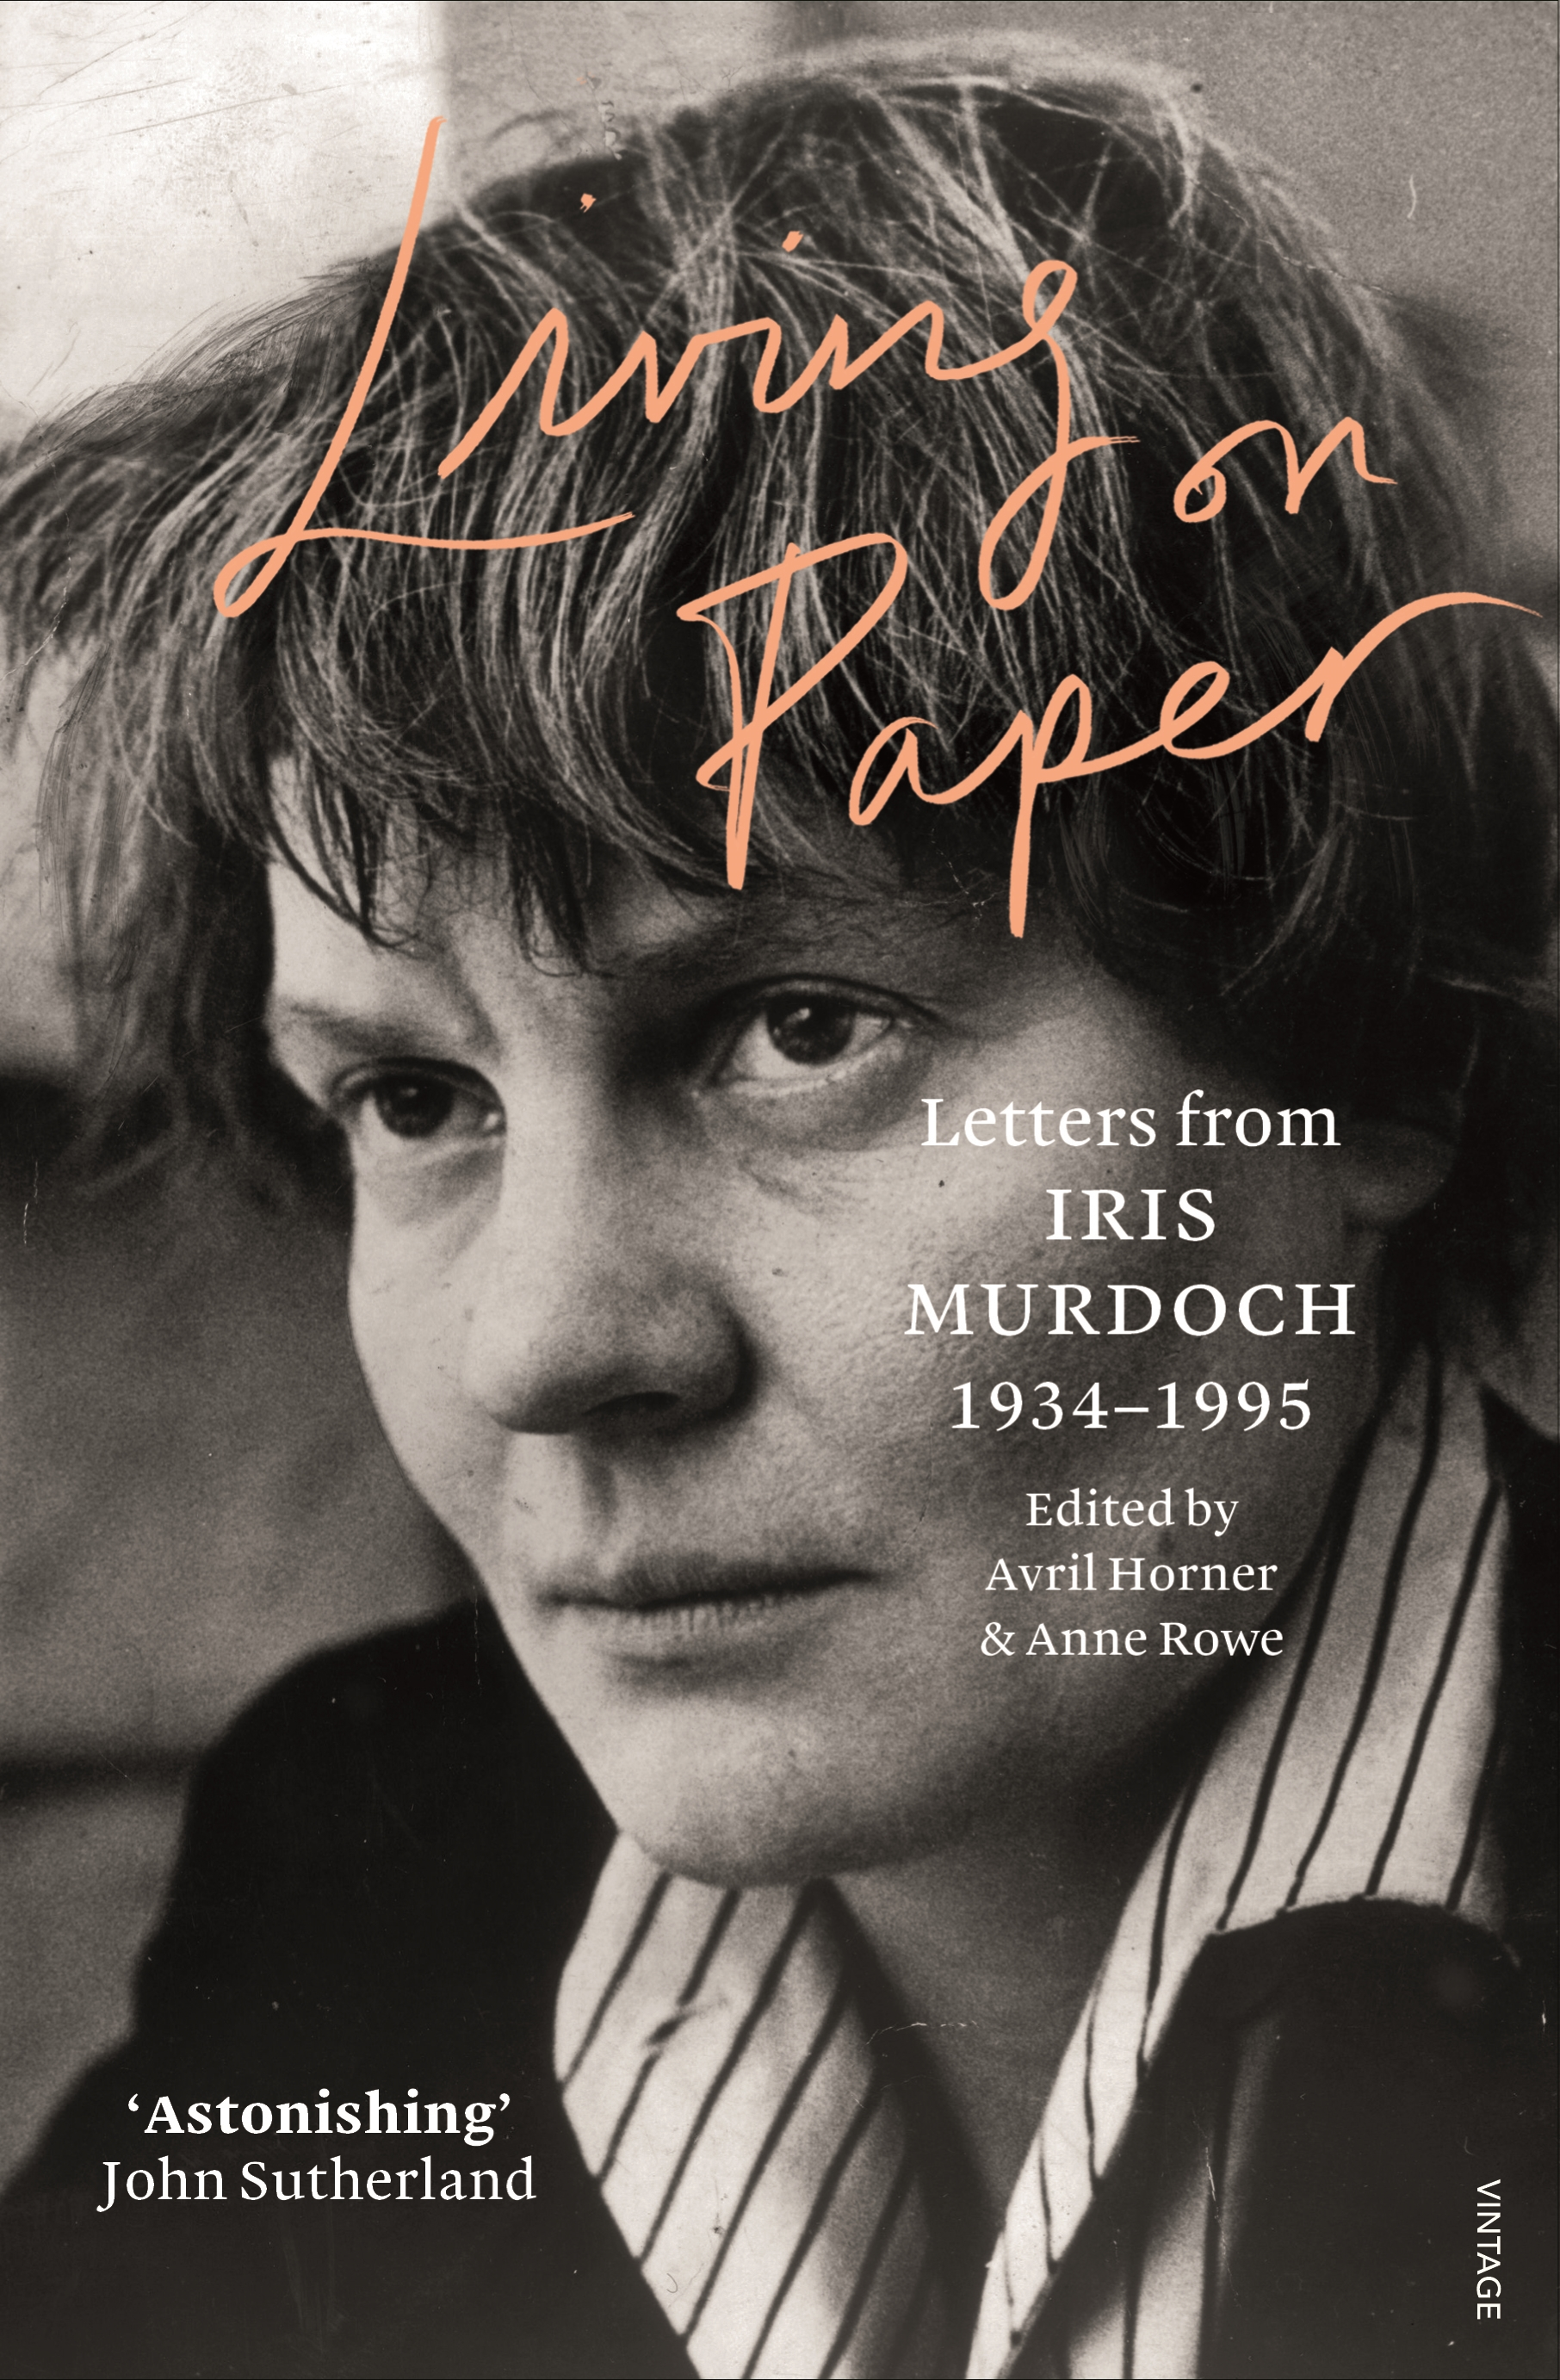 iris murdoch essays Iris murdoch (1919-1999) was one of the most acclaimed british writers of the   and numerous essays before developing alzheimer's disease in the mid-1990s.